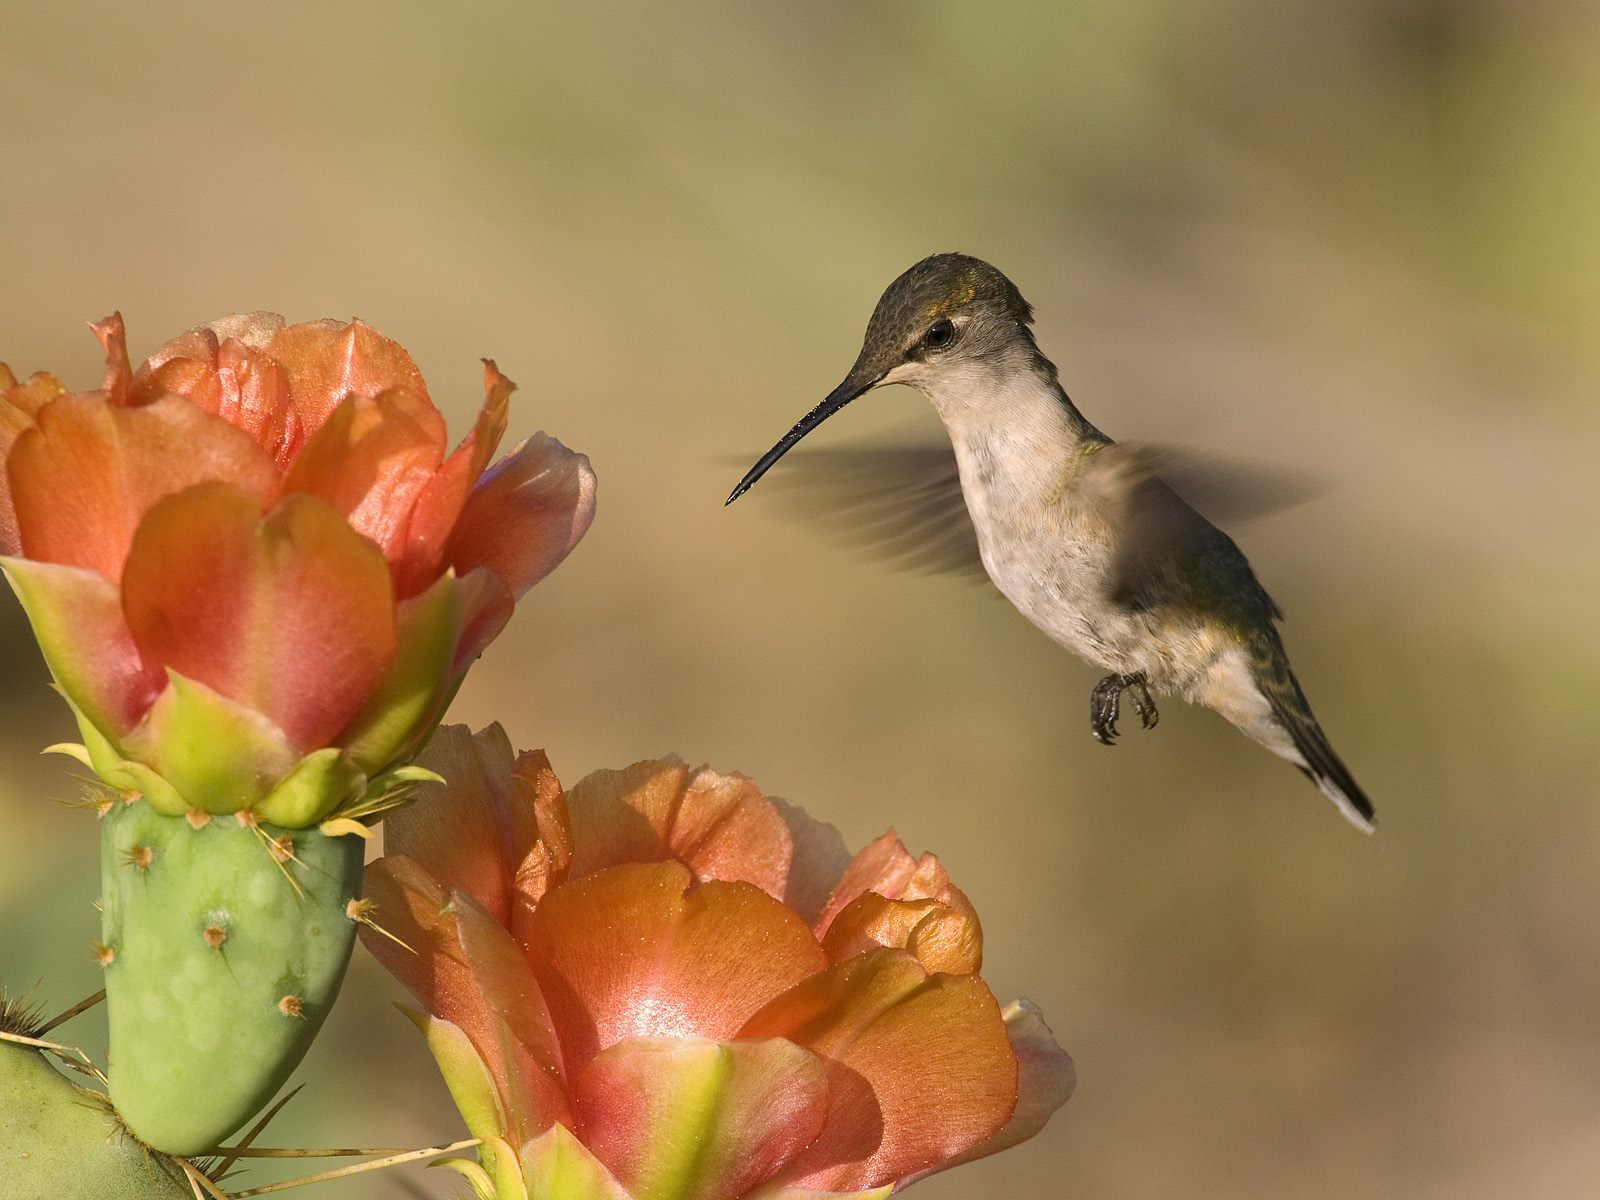 http://1.bp.blogspot.com/-oNzeQqnoUUk/TvSeZyqMFOI/AAAAAAAAA8o/8FfnGpIYDNI/s1600/Ruby-Throated_Hummingbird_and_Cactus_Flowers_Texas.jpg